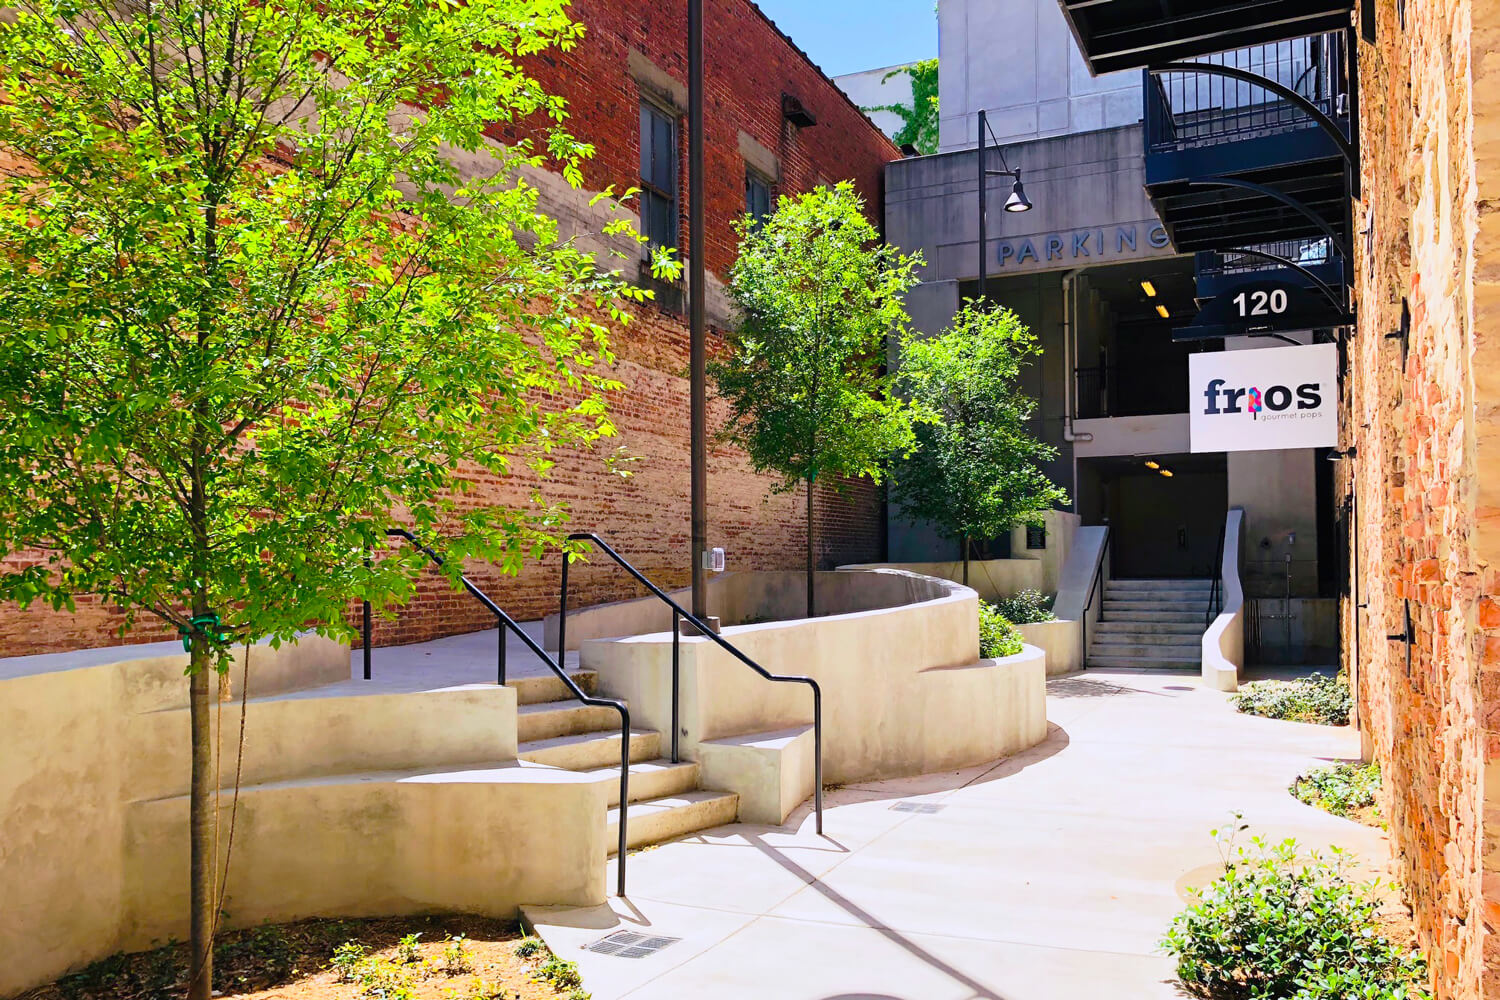 Dexter Alley Looking Towards Parking Deck - Designed by Foshee Architecture